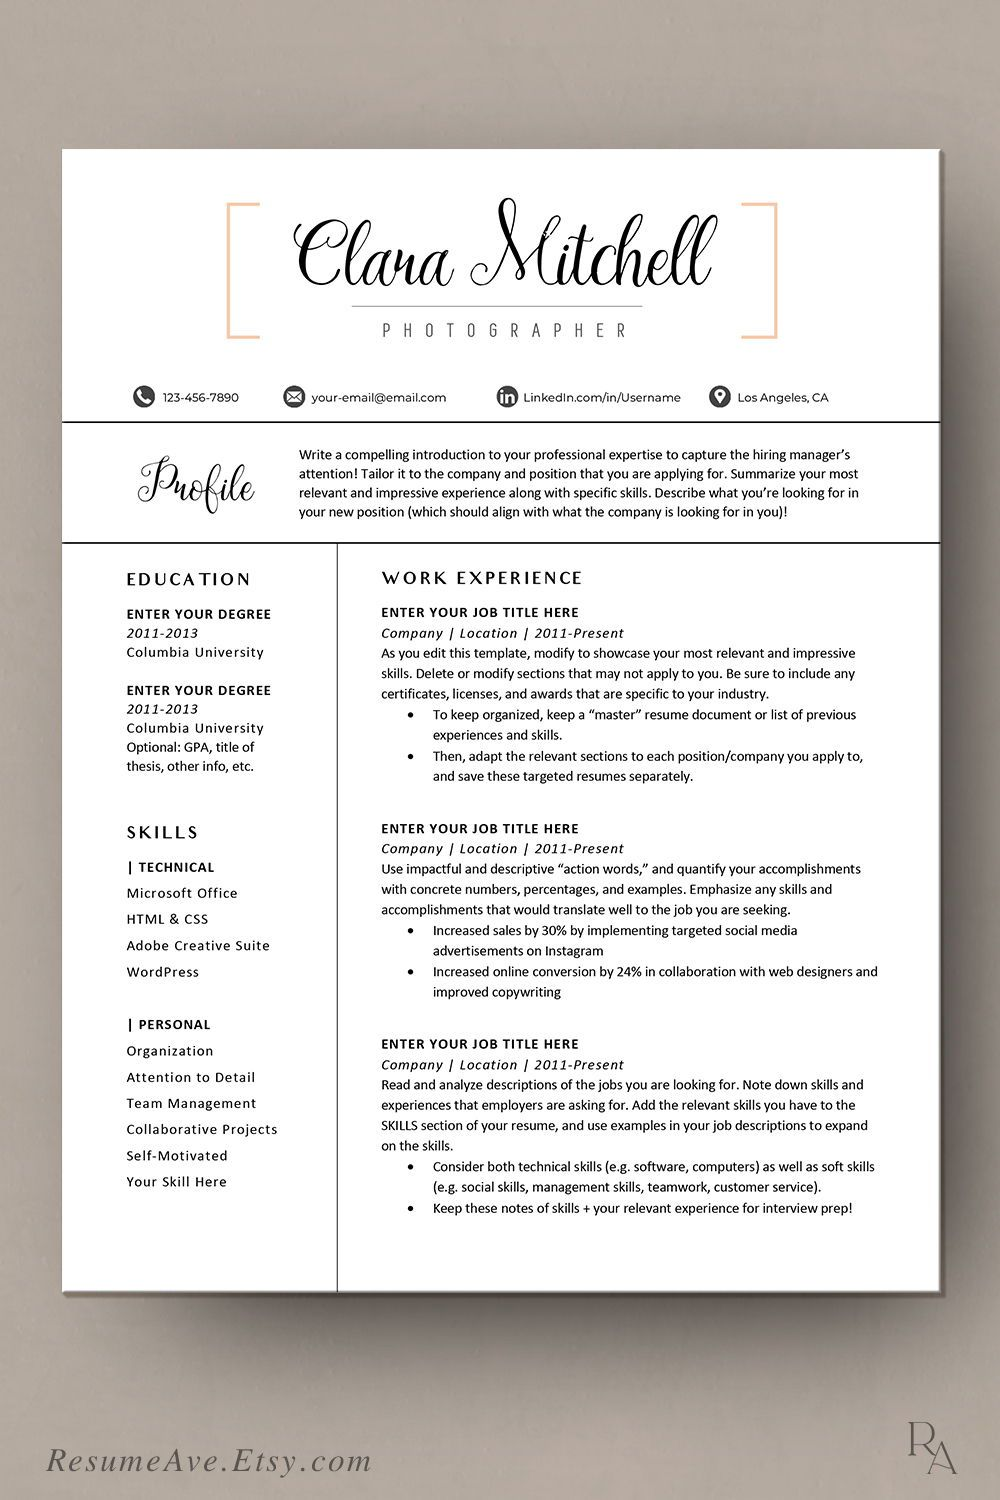 Orange CV template professional teacher resume template